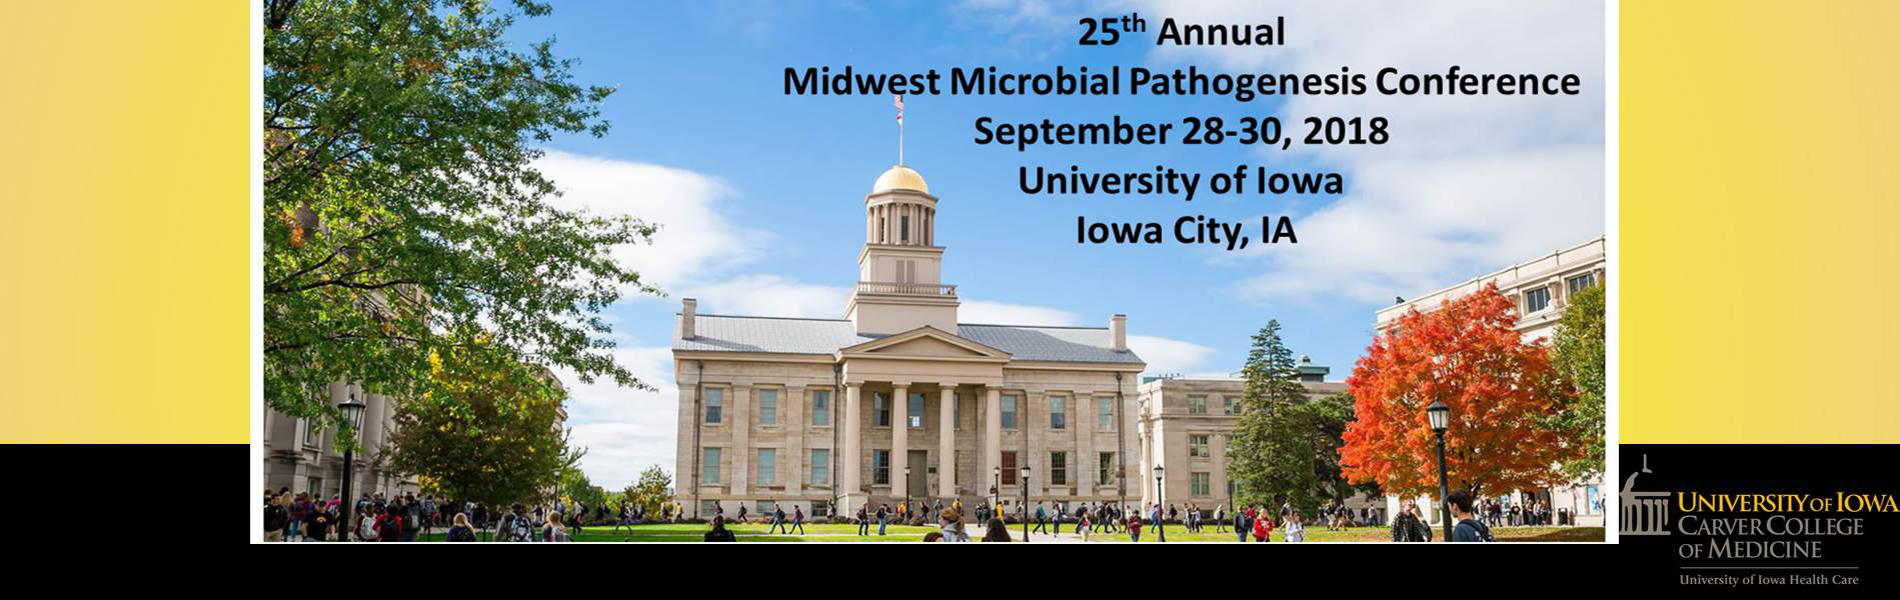 Midwest Microbial Pathogensis Conference (MMPC) 9/28-30/18